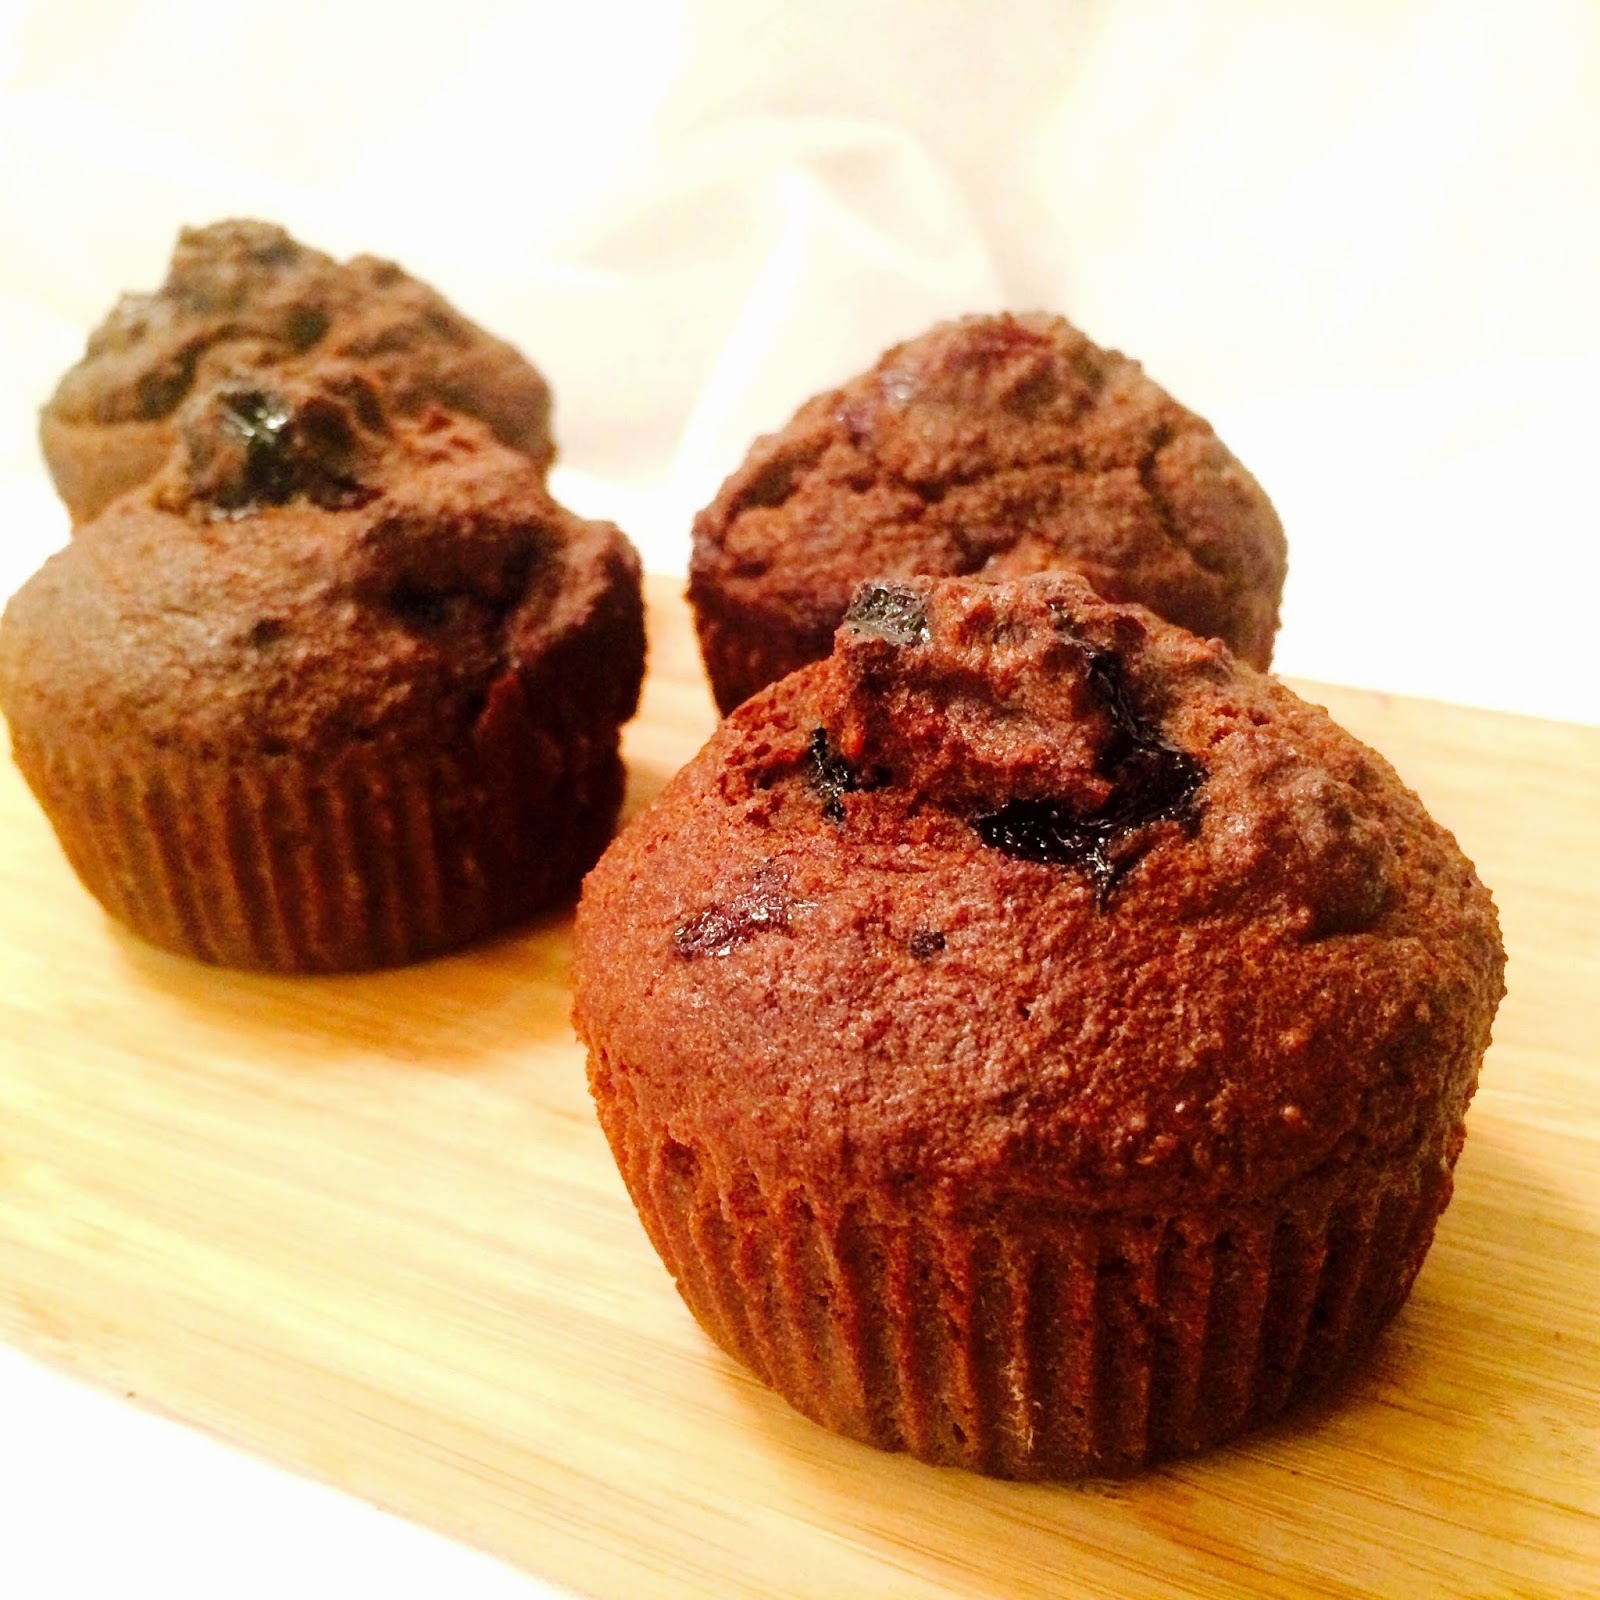 Chocolate Blueberry Almond Spelt Muffins Recipe